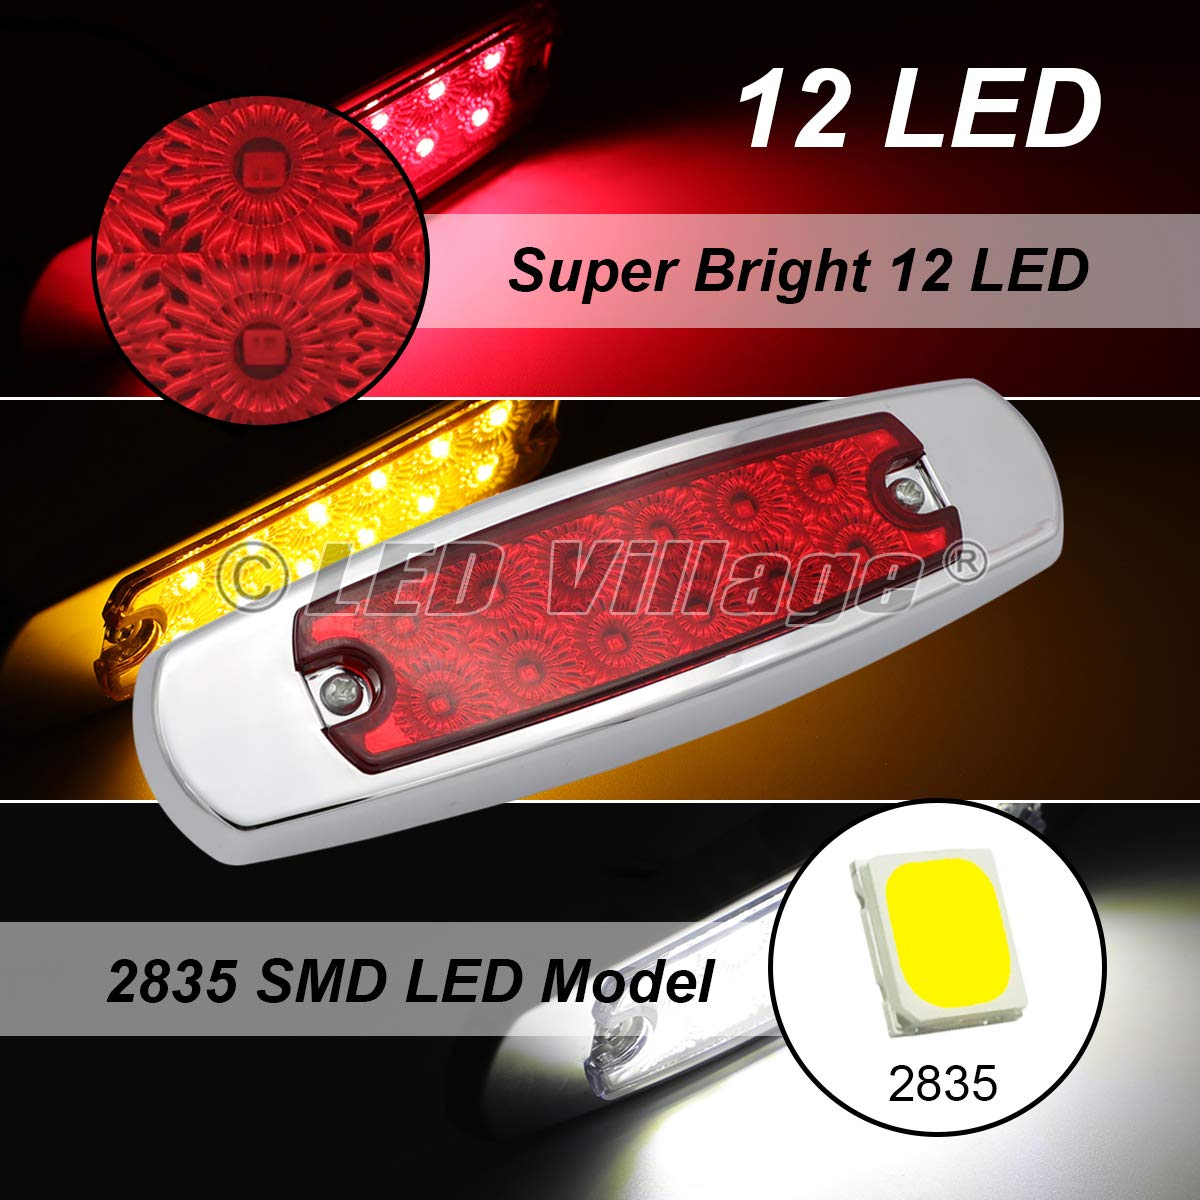 Pack of 2 Fish Shape 6.4 Inch Clear Lens Red LED 12 Diodes Surface Mount Side Maker Lights Truck Peterbilt Style Clearance Lamp Pickup Trailer RV Lorry Chrome Housing Super Bright LedVillage 24V DC